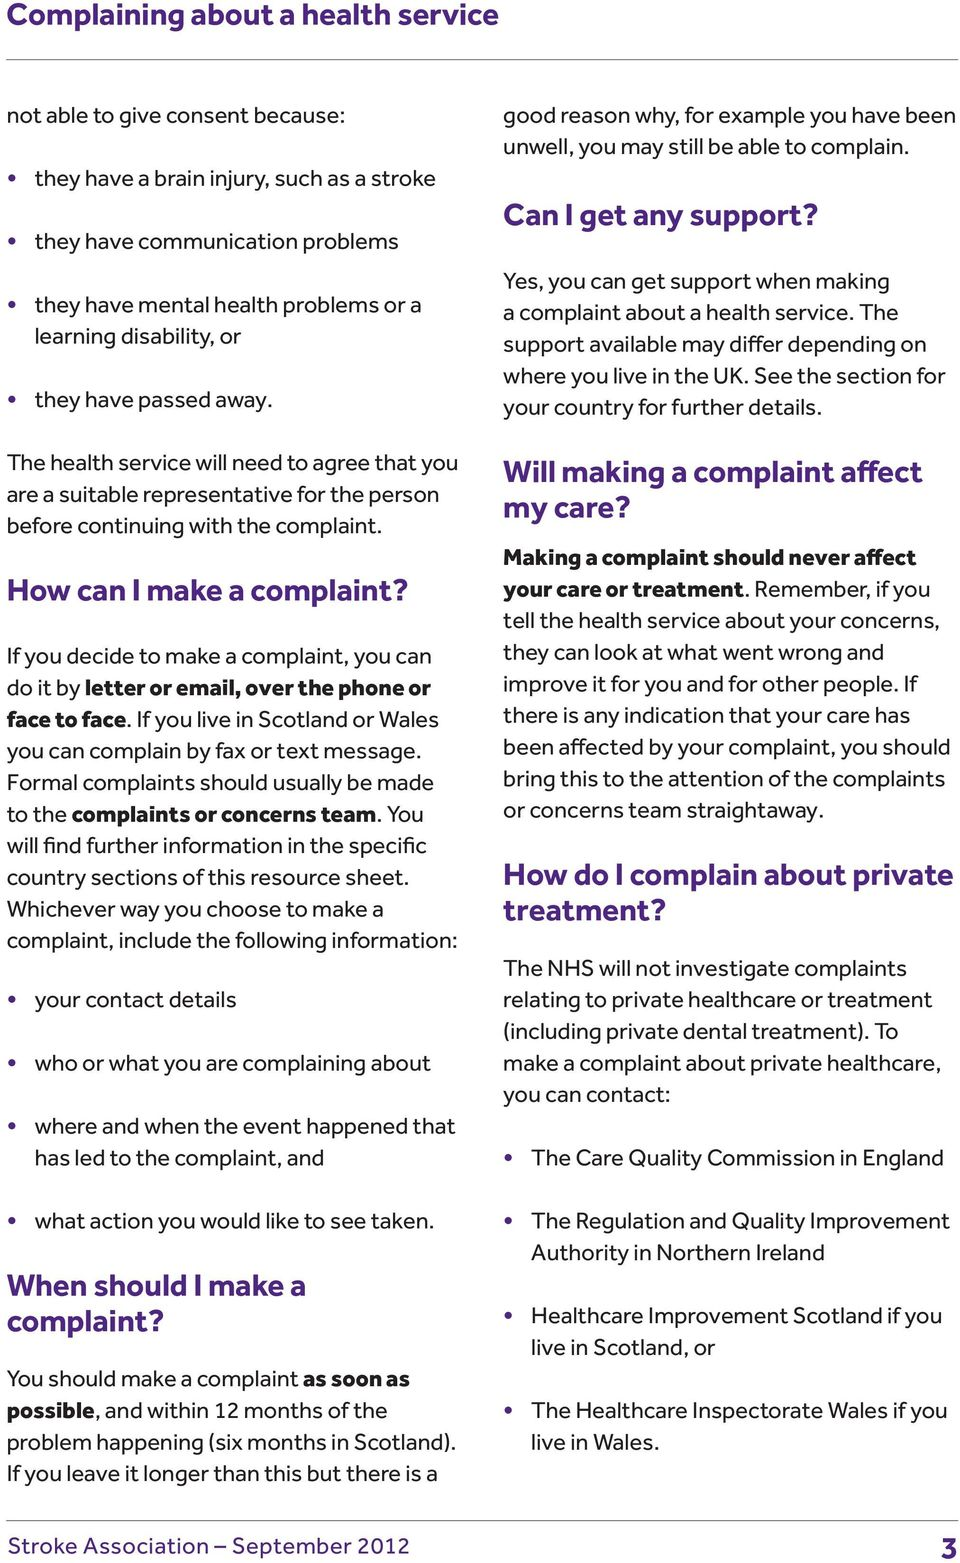 If you decide to make a complaint, you can do it by letter or email, over the phone or face to face. If you live in Scotland or Wales you can complain by fax or text message.